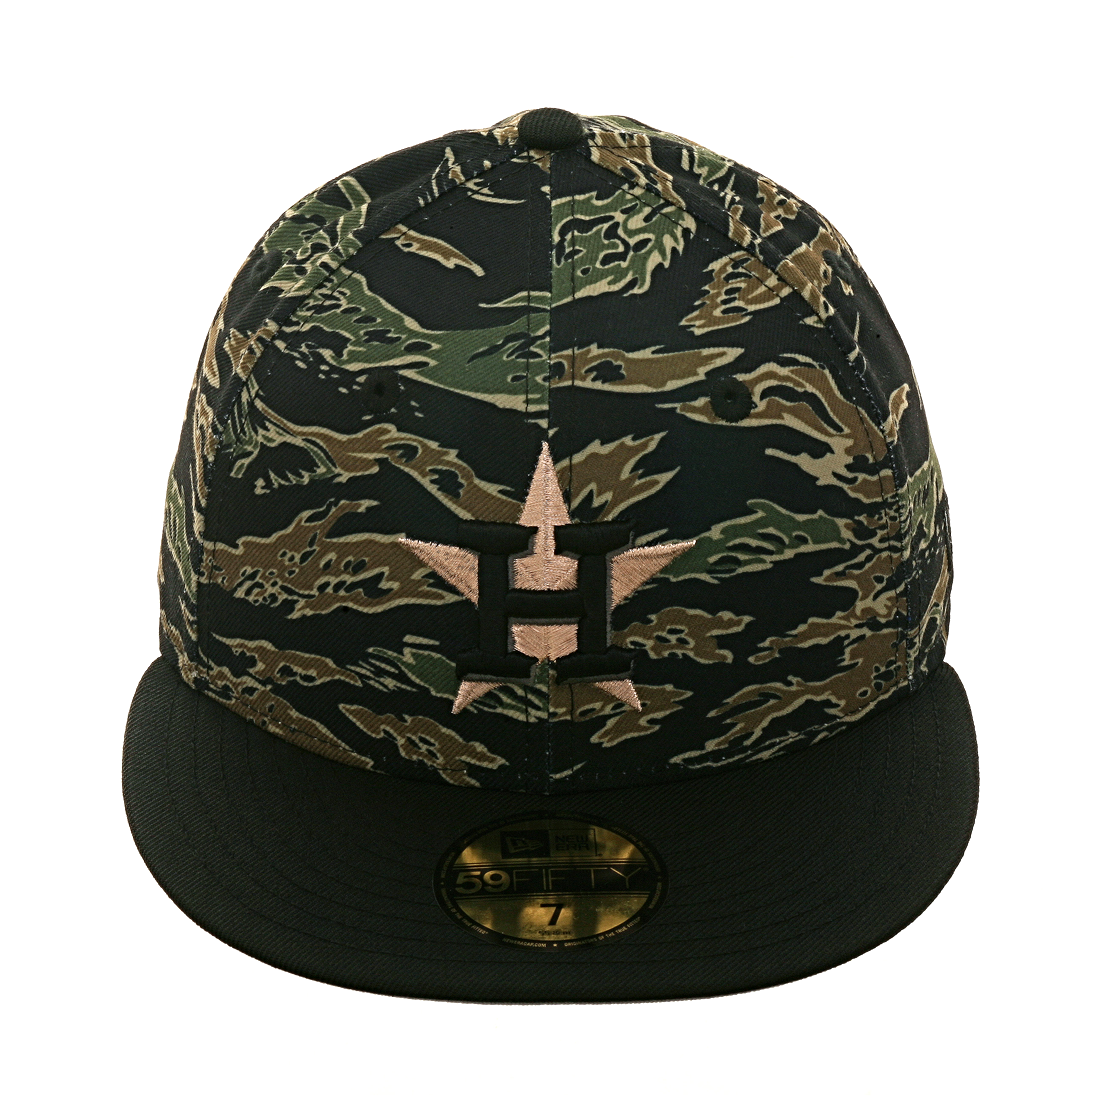 Exclusive New Era 59Fifty Houston Astros Hat - 2T Tiger Camo 7f6597ff1